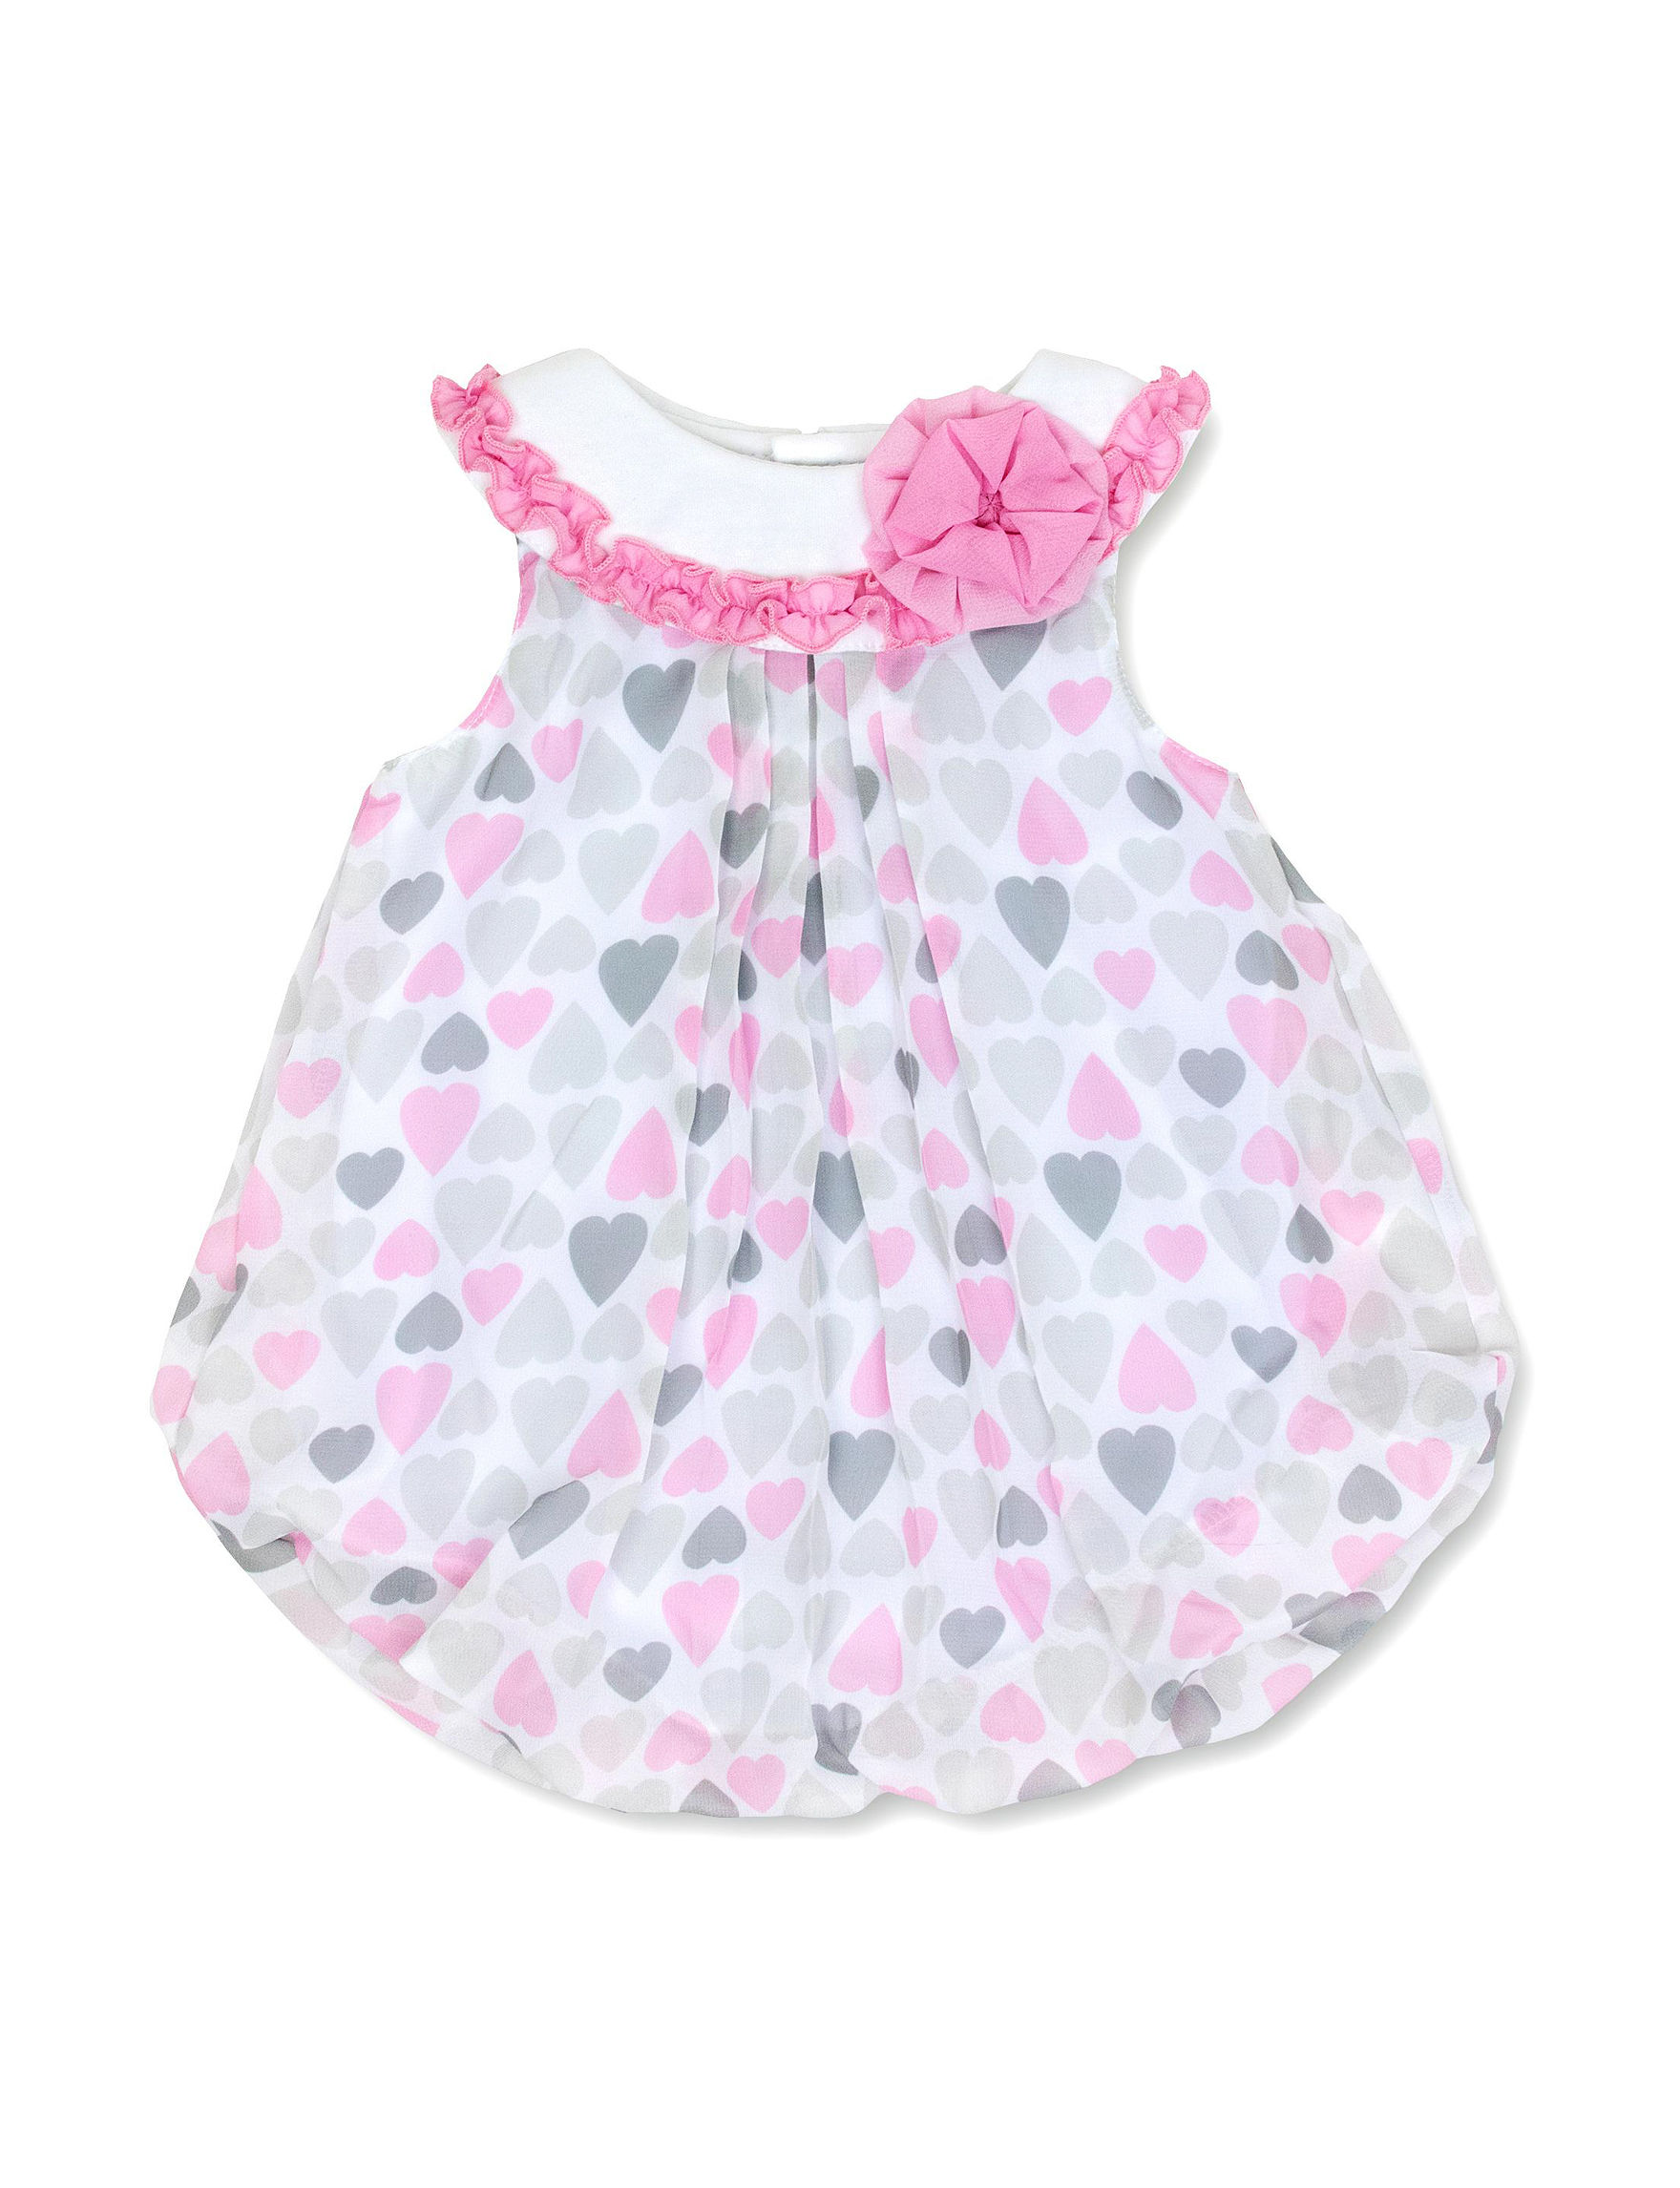 Baby Essentials Pink / Grey